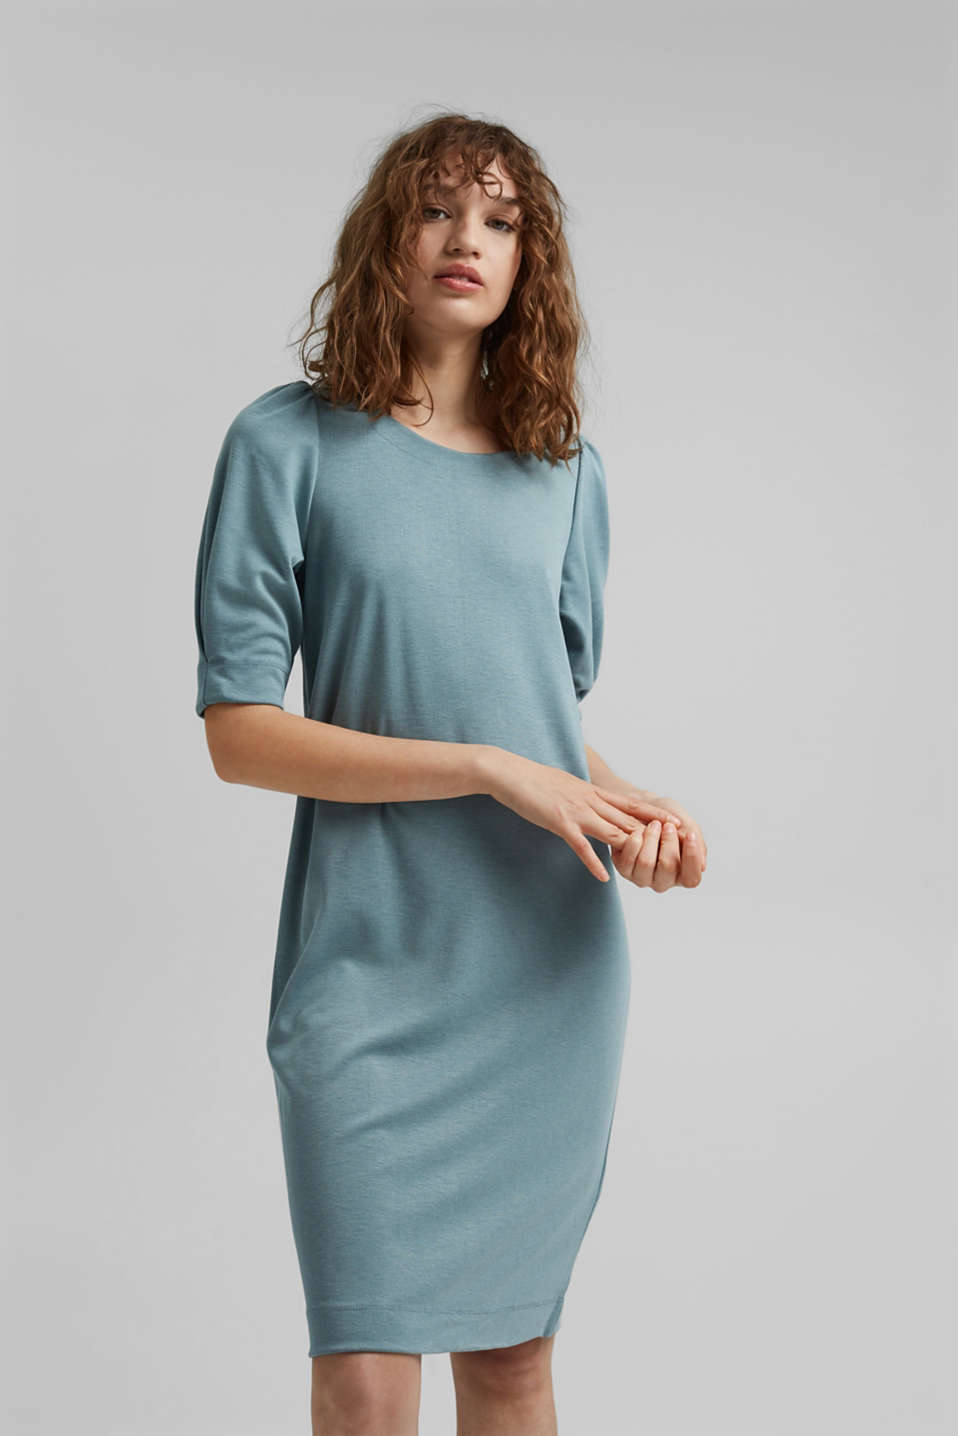 Esprit - puff sleeve dress